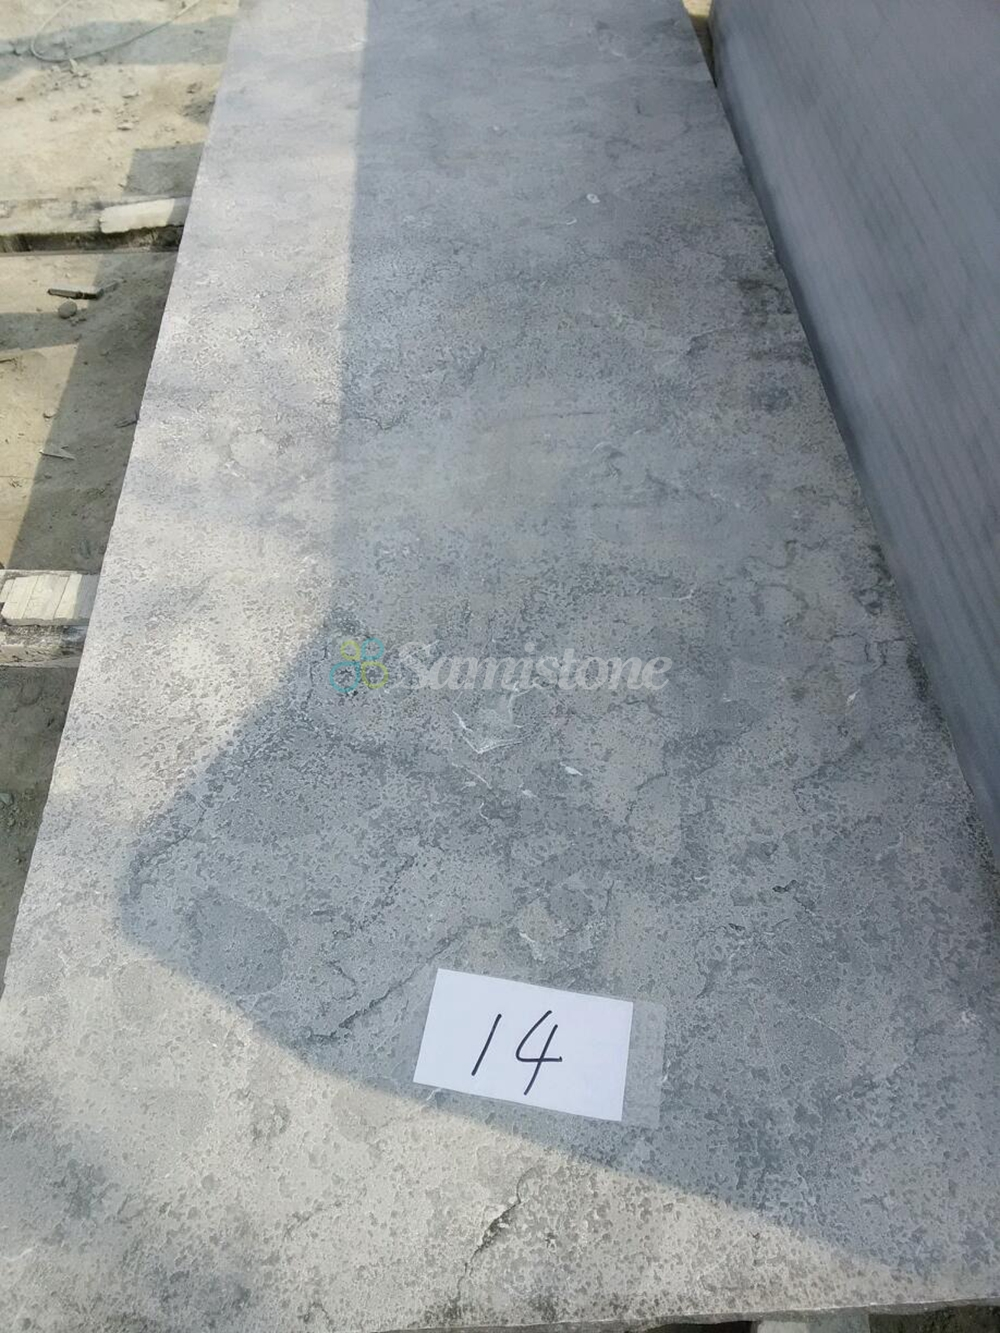 Samistone bluestone flamed brushed slabs countertops for Bluestone pricing